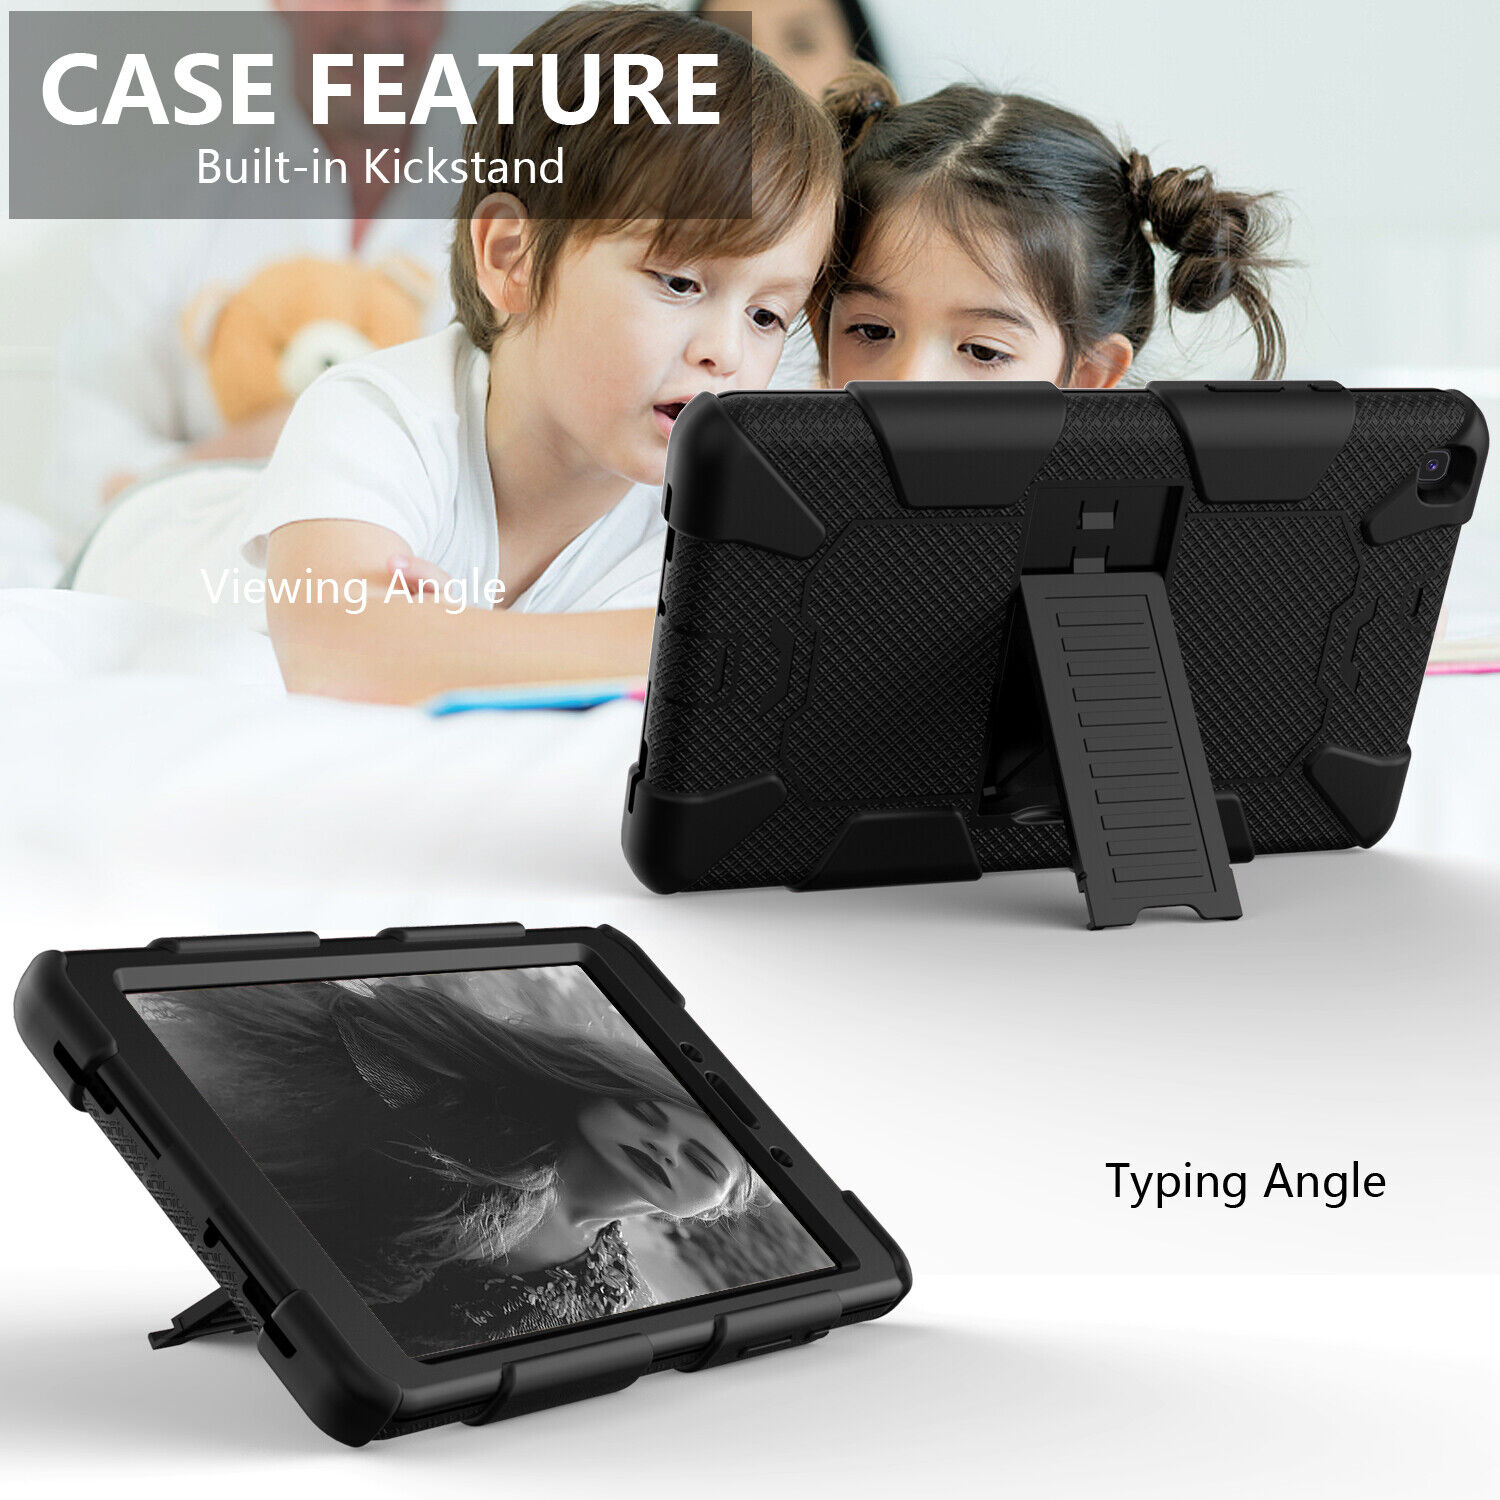 For Samsung Galaxy Tab A 8″ SM-T290/T295 Shockproof Rugged Tablet Case+ Screen Cases, Covers, Keyboard Folios